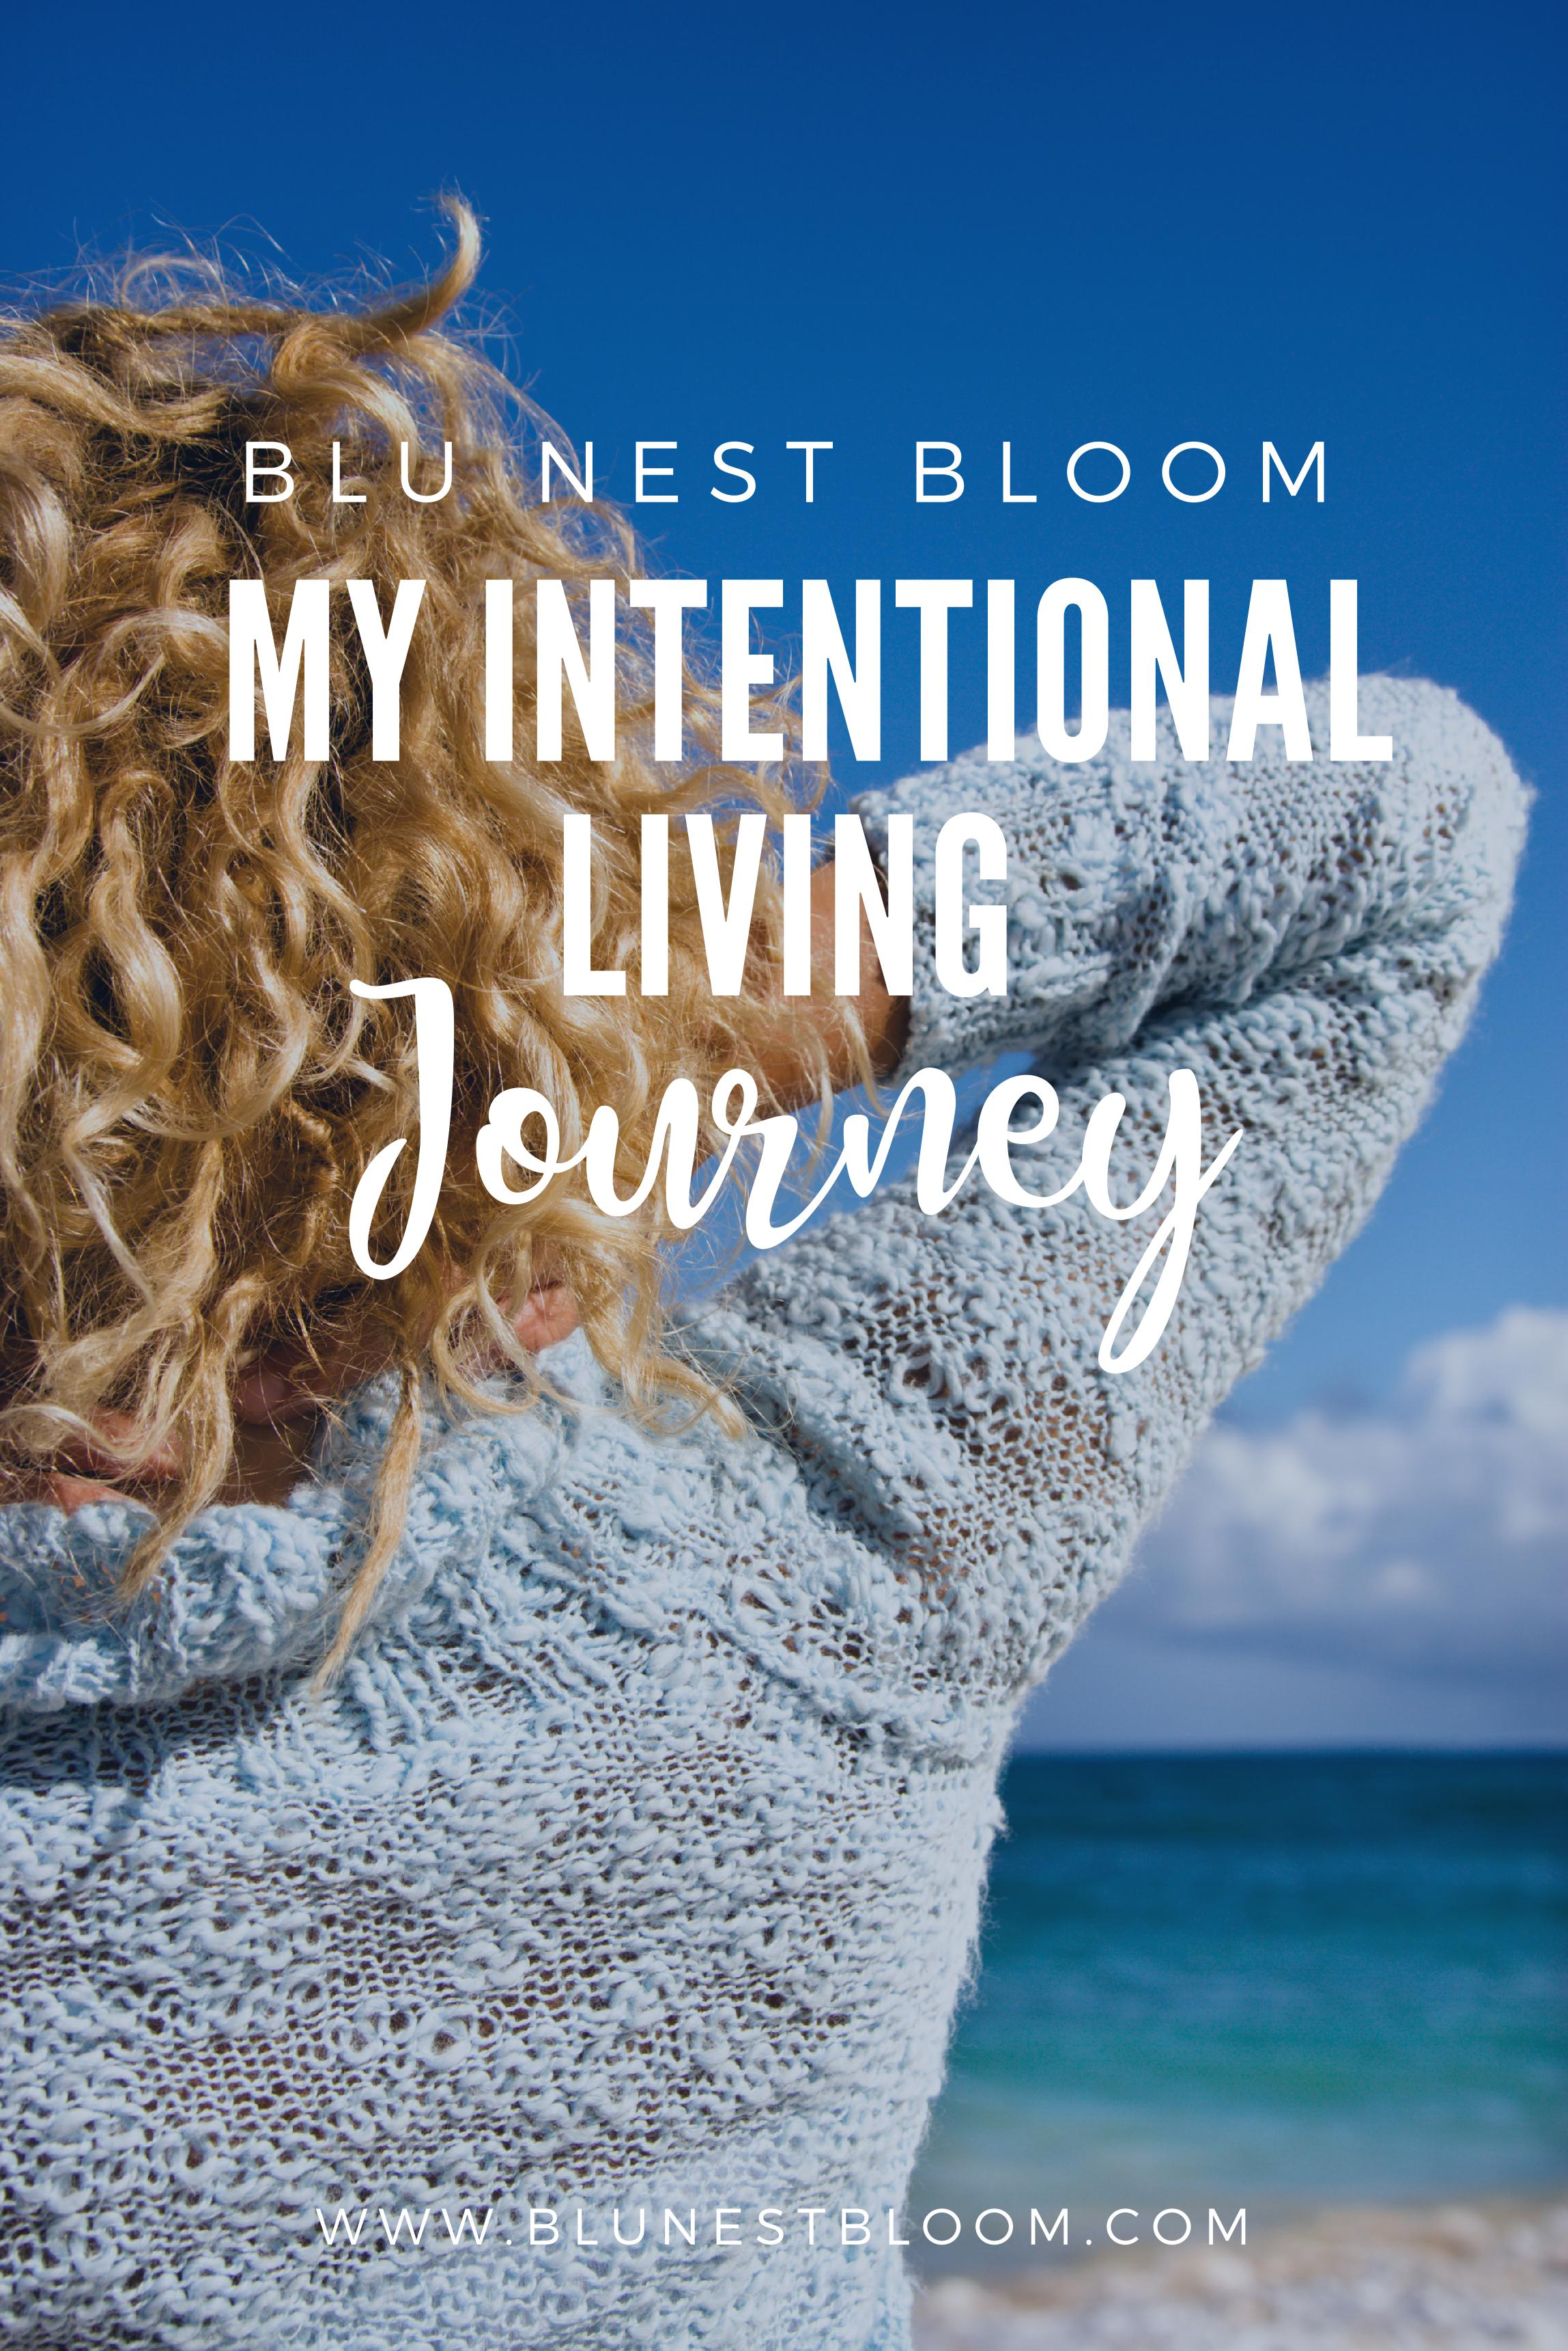 My Intentional Living Journey